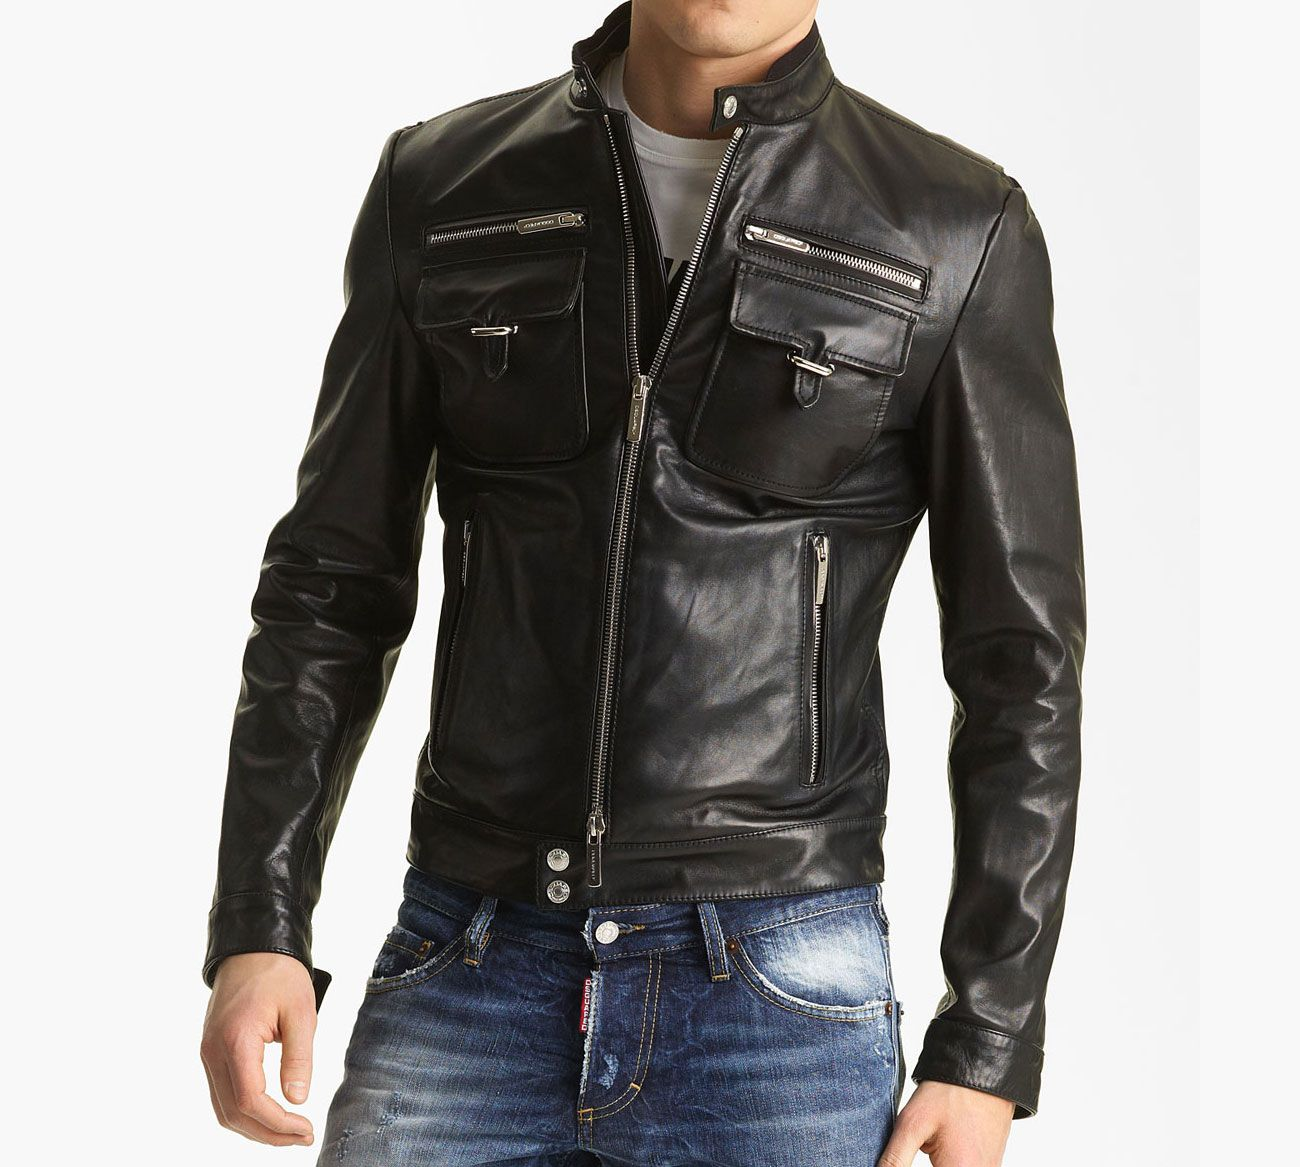 Leather Jackets...love this smell and look of leather on a man. ;0 ...